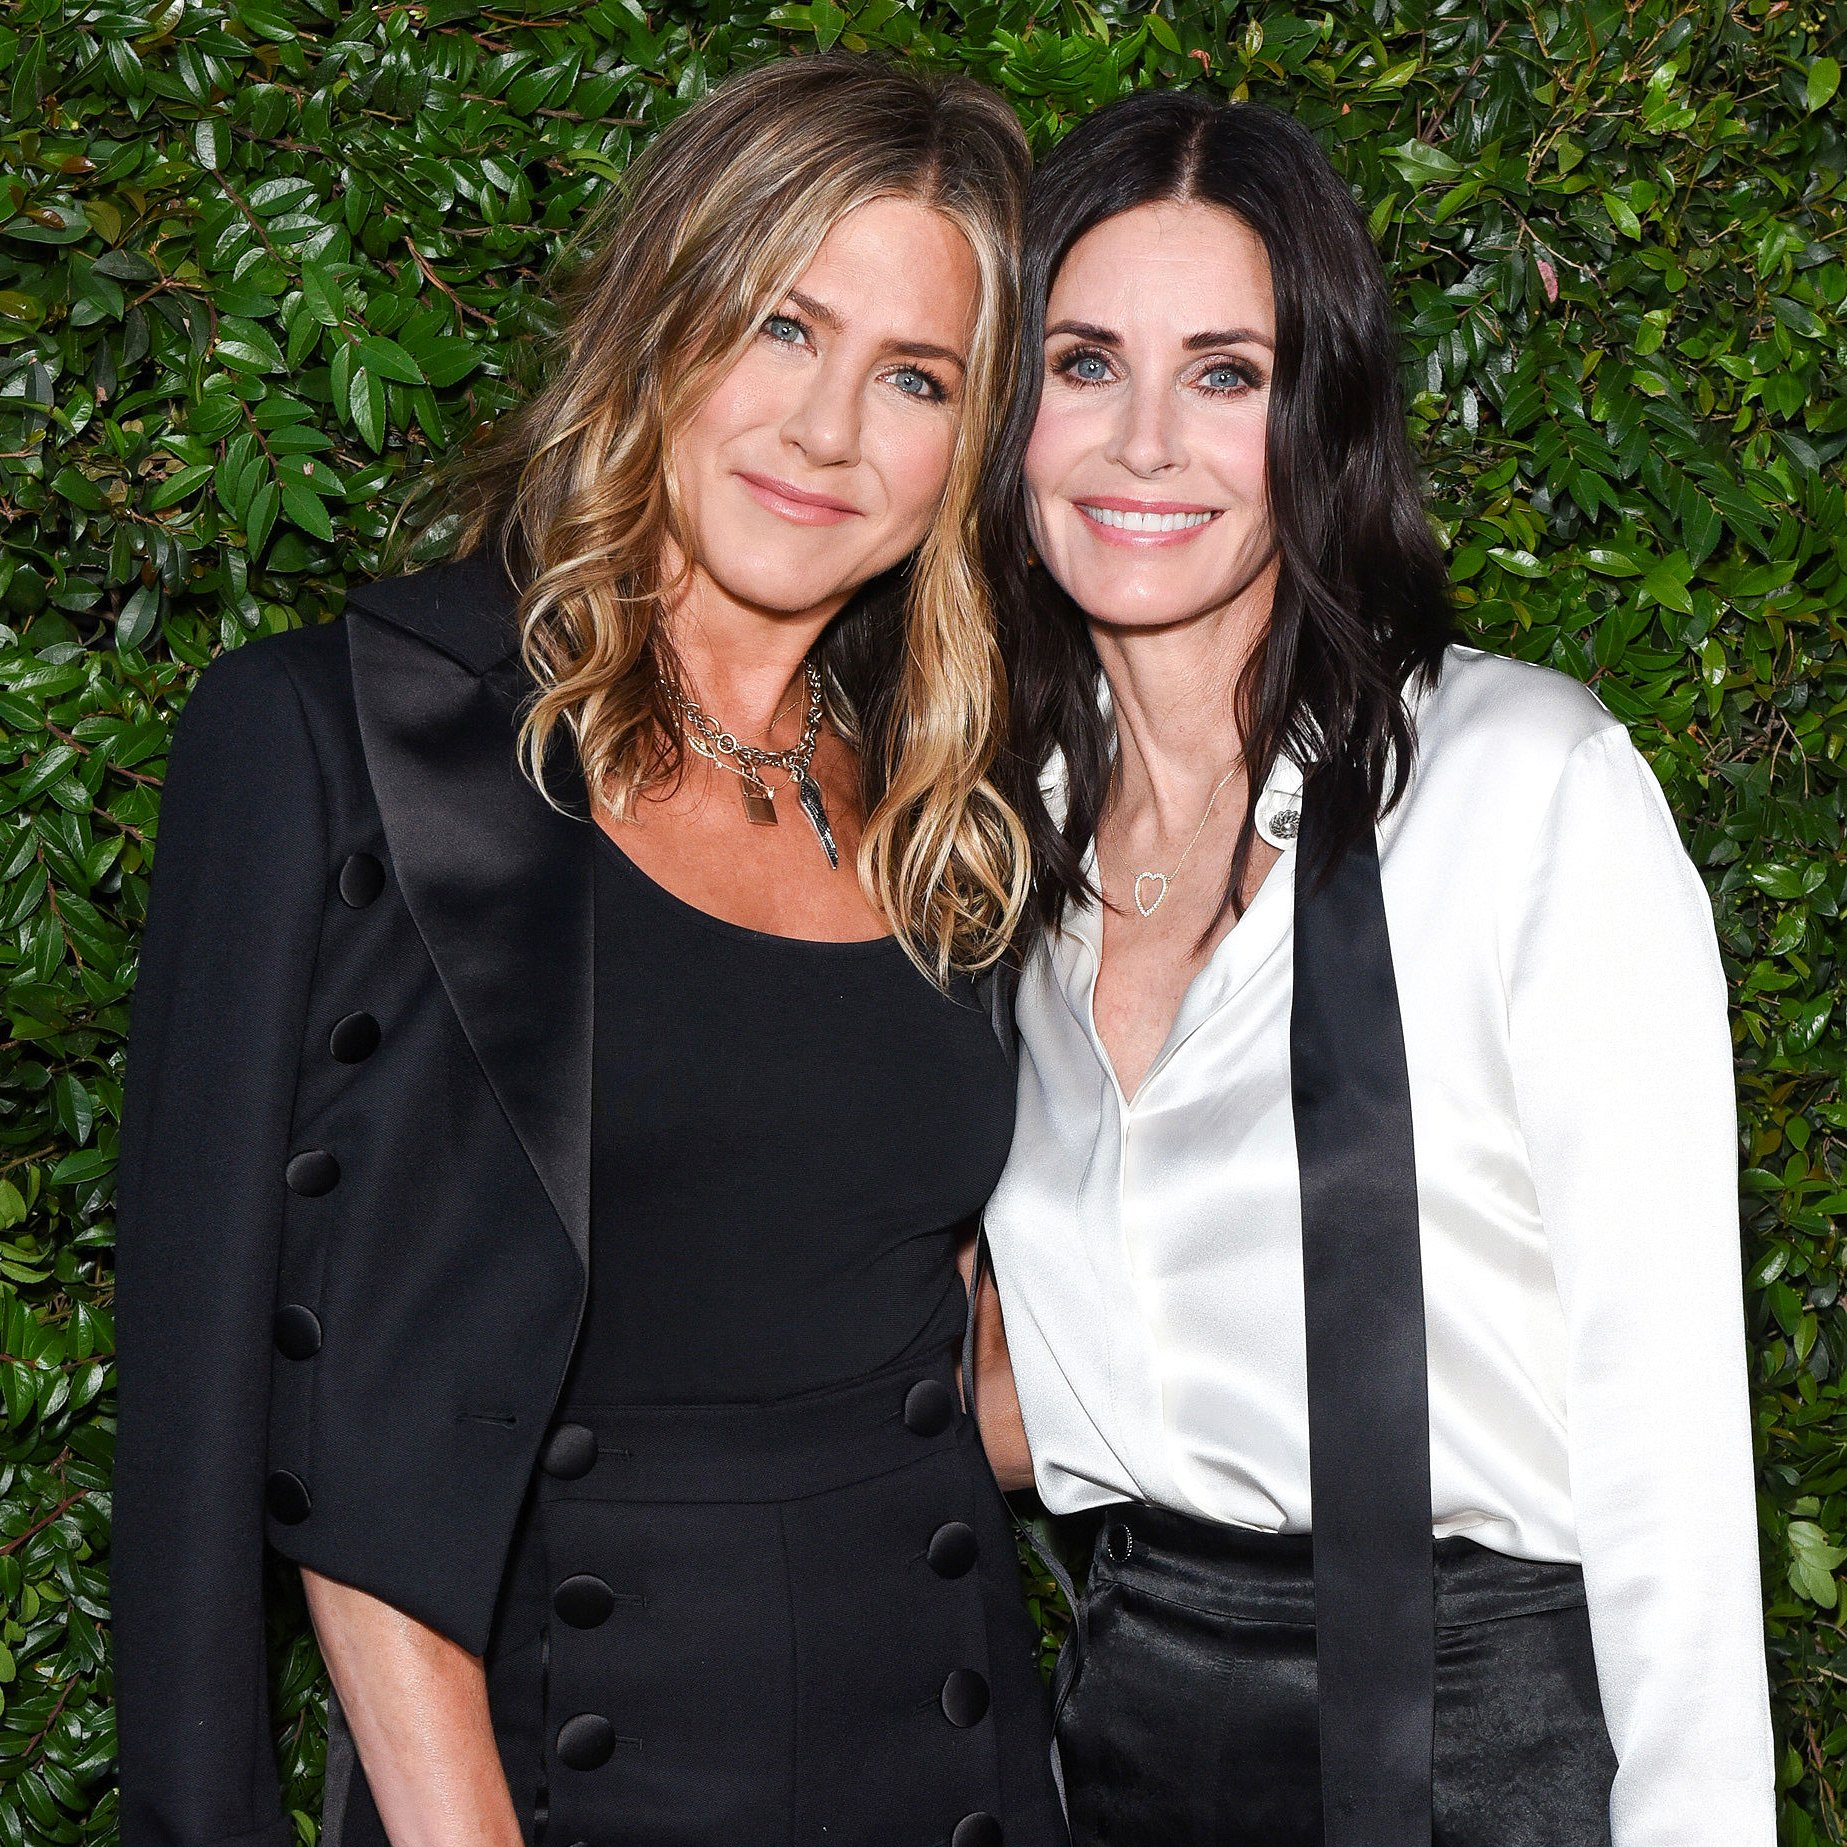 ennifer Aniston, Courteney Cox and Friends Arrive Safely in Cabo After Emergency Plane Landing